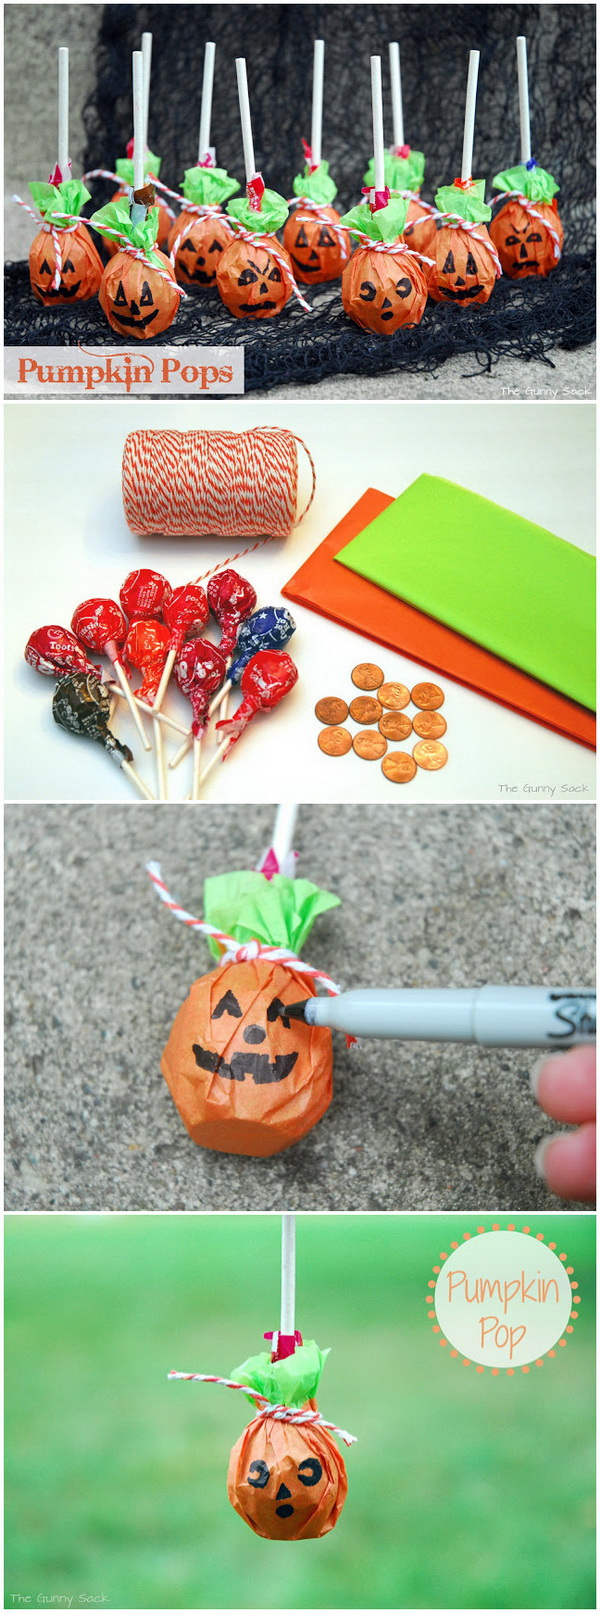 Pumpkin Pops. Pretty and adorable little pumpkin pops! They are the ideal finale to your Halloween celebration.